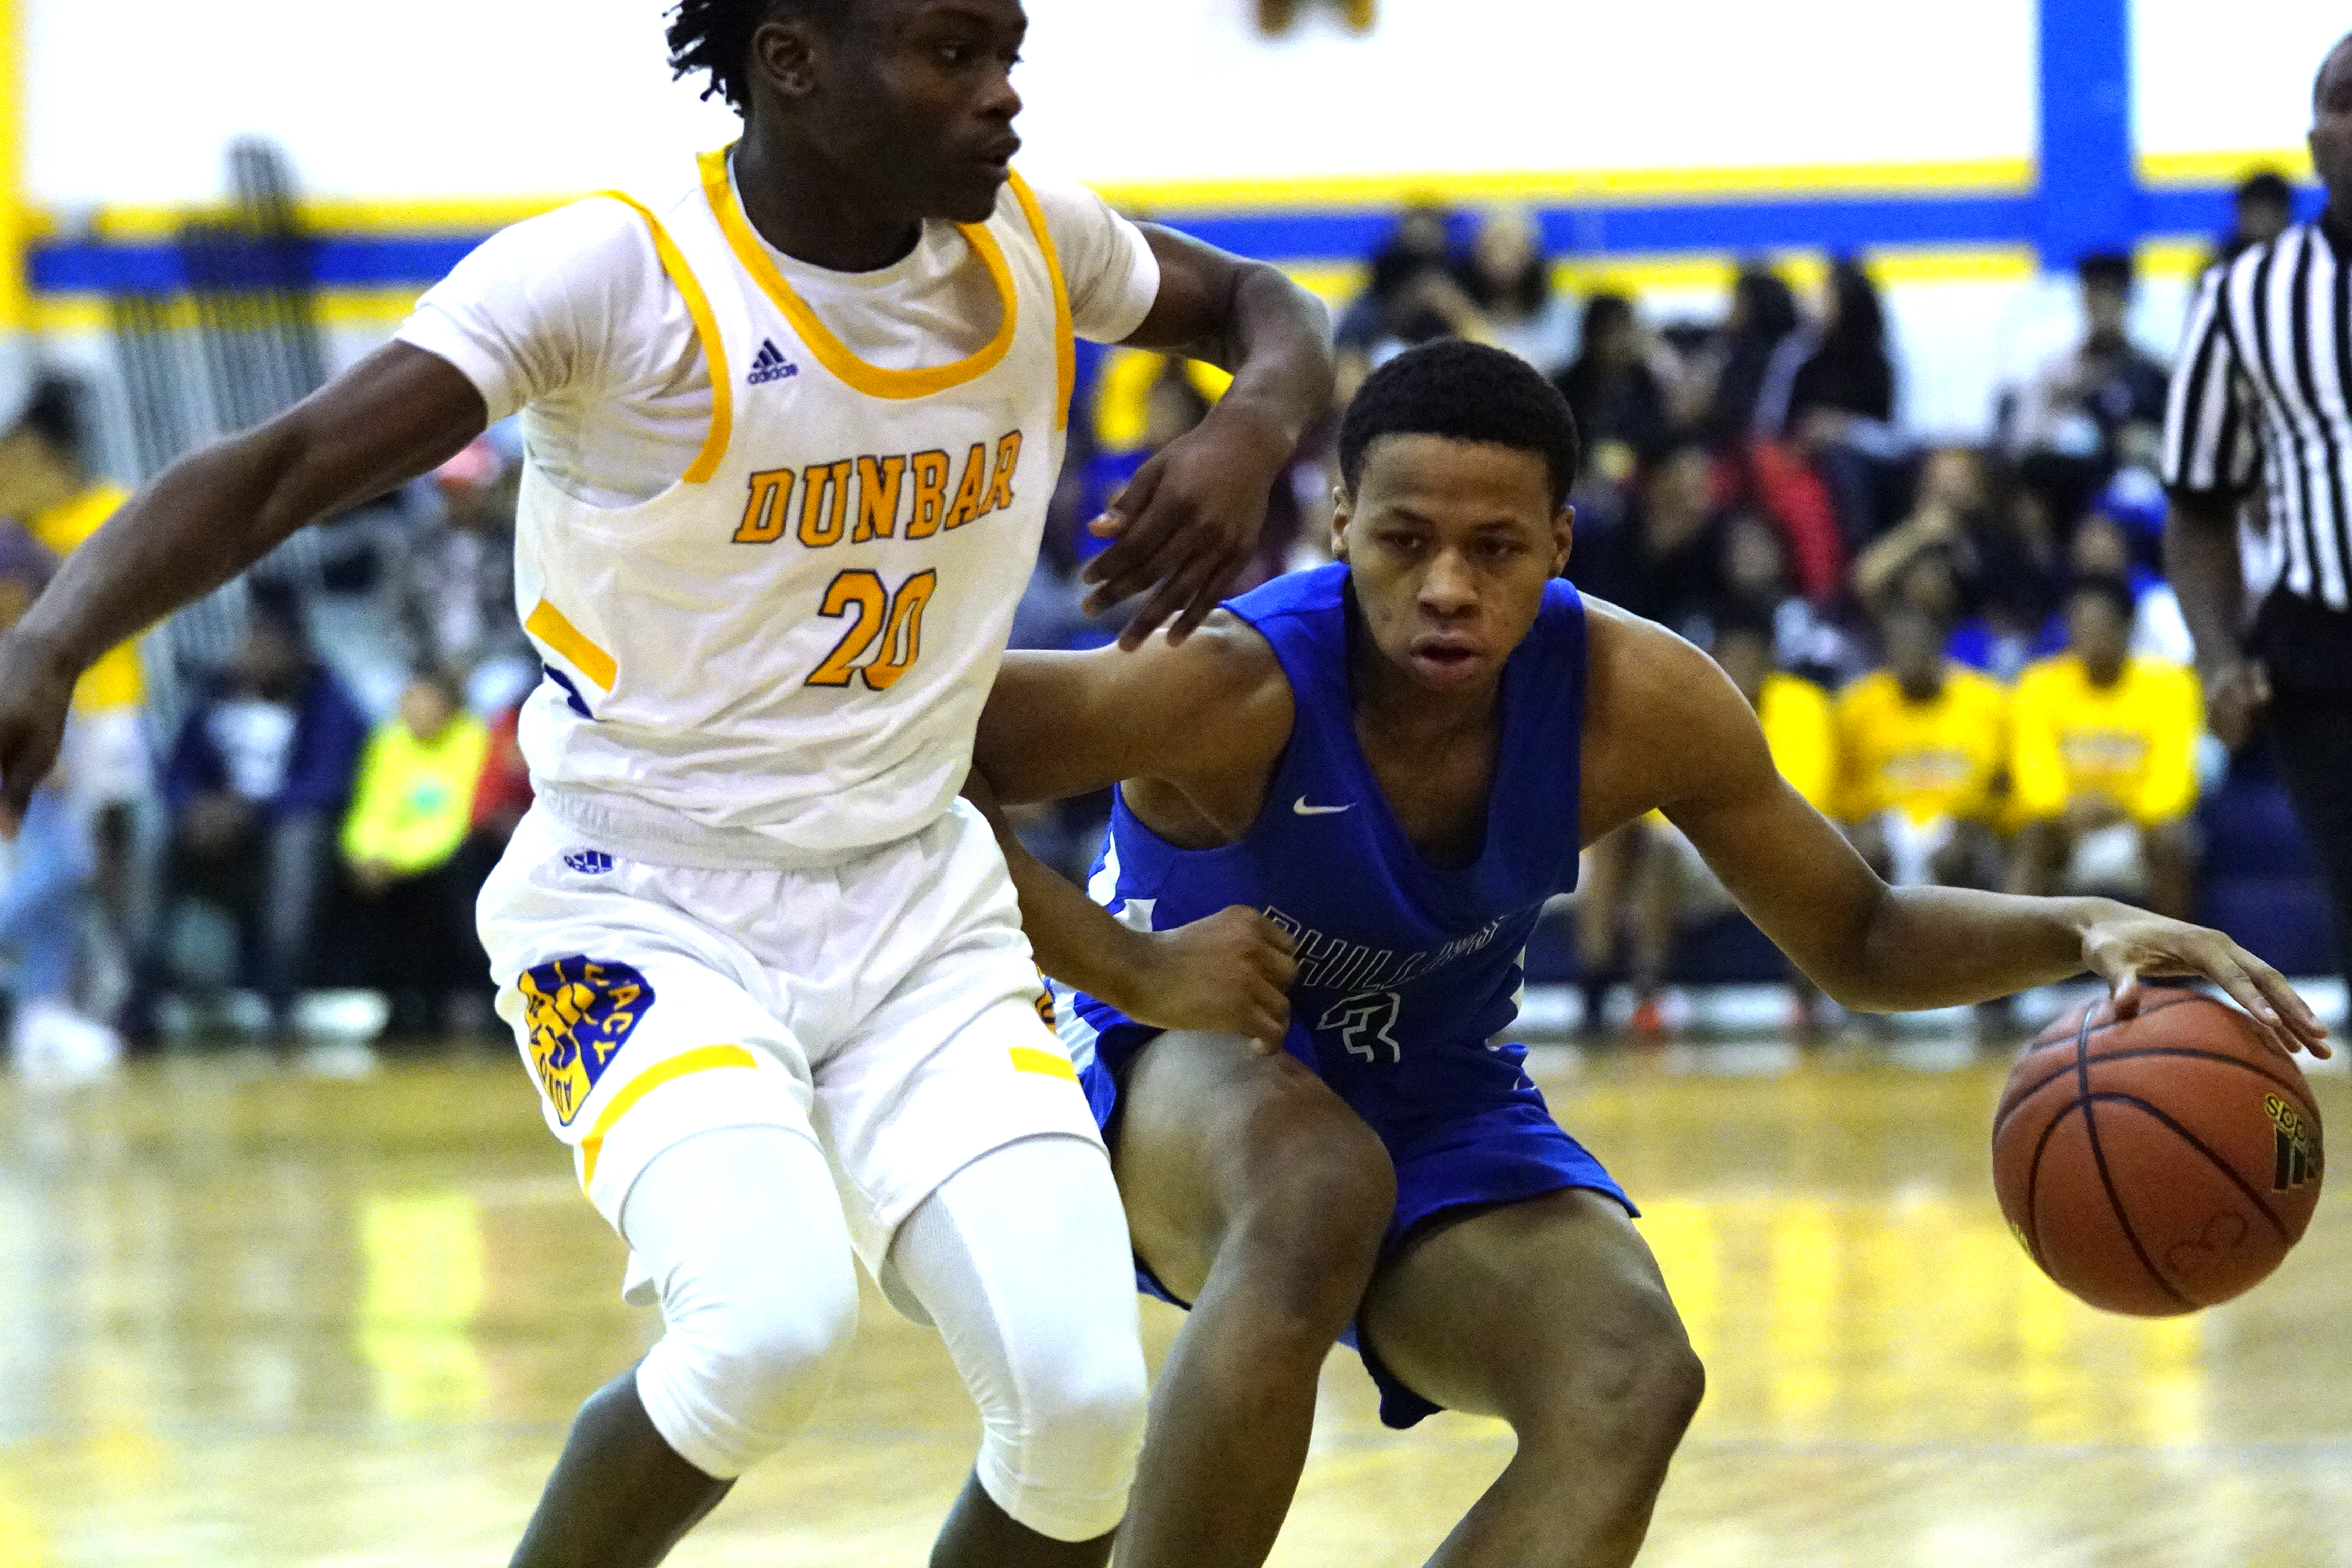 Phillips senior Lewis Paty (3) tries to make a move past Dunbar's Edward Butler (20).